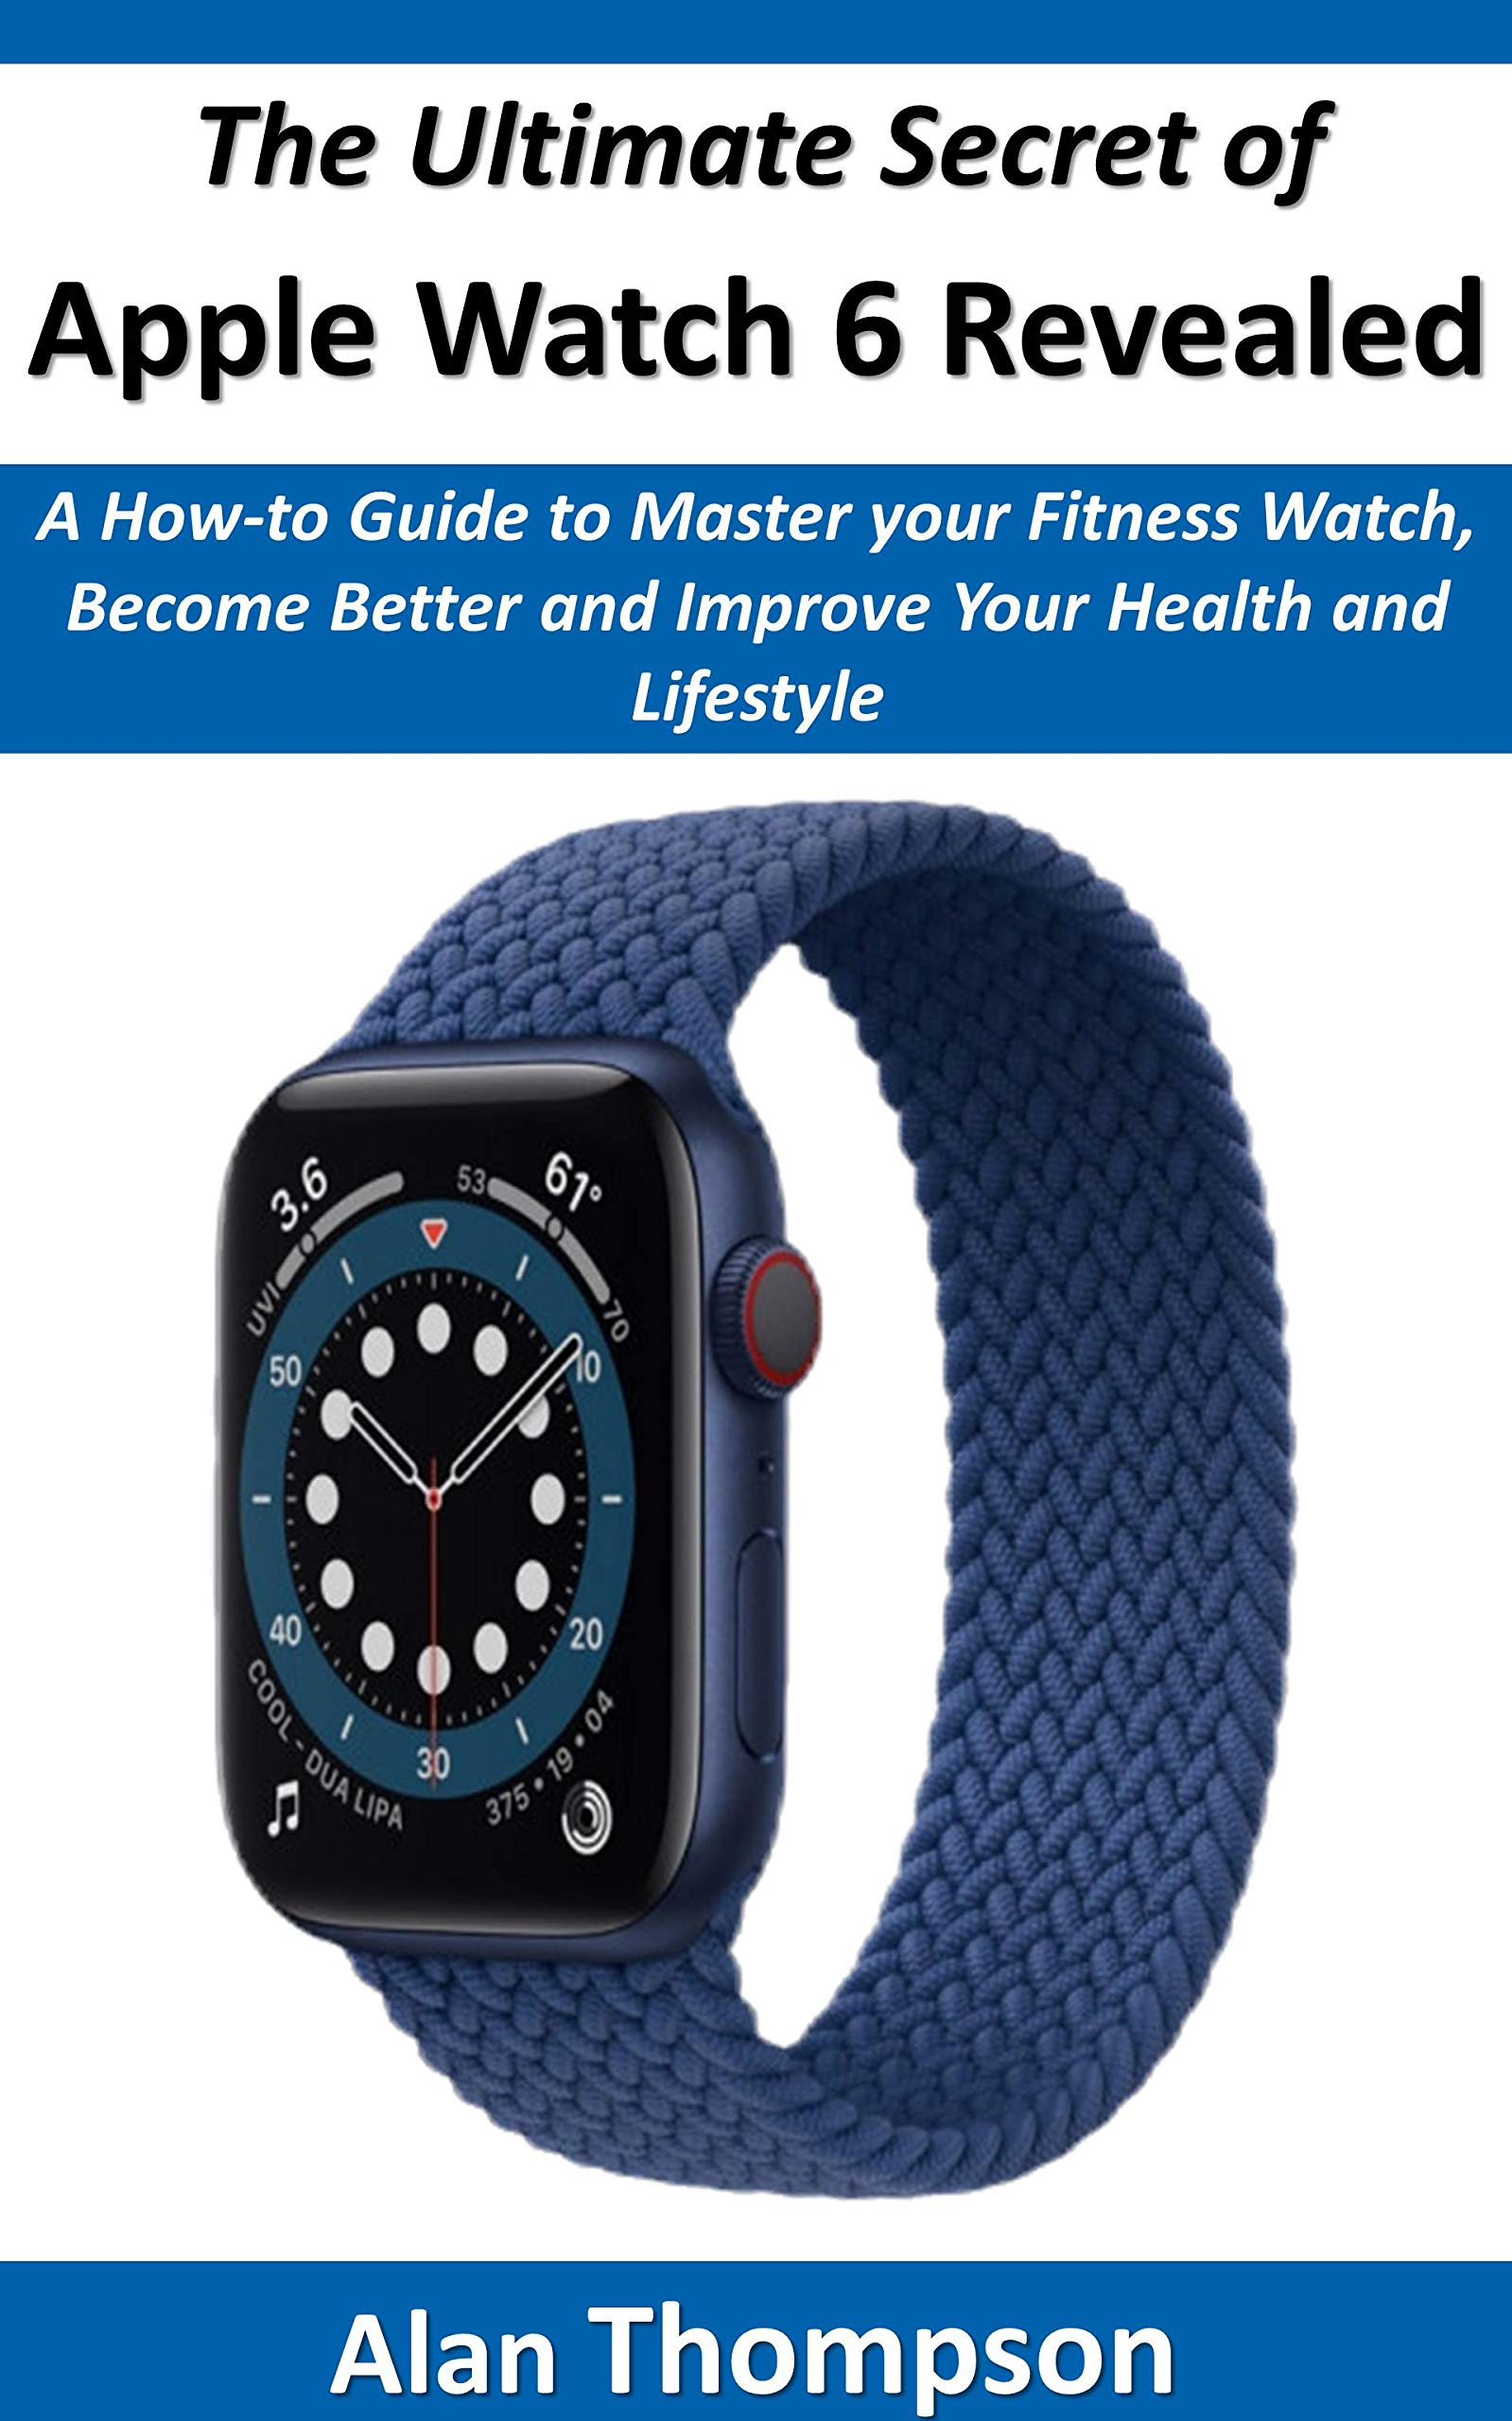 The Ultimate Secret of Apple Watch 6 Revealed: A How-to Guide to Master your Fitness Watch, Become Better and Improve Your Health and Lifestyle